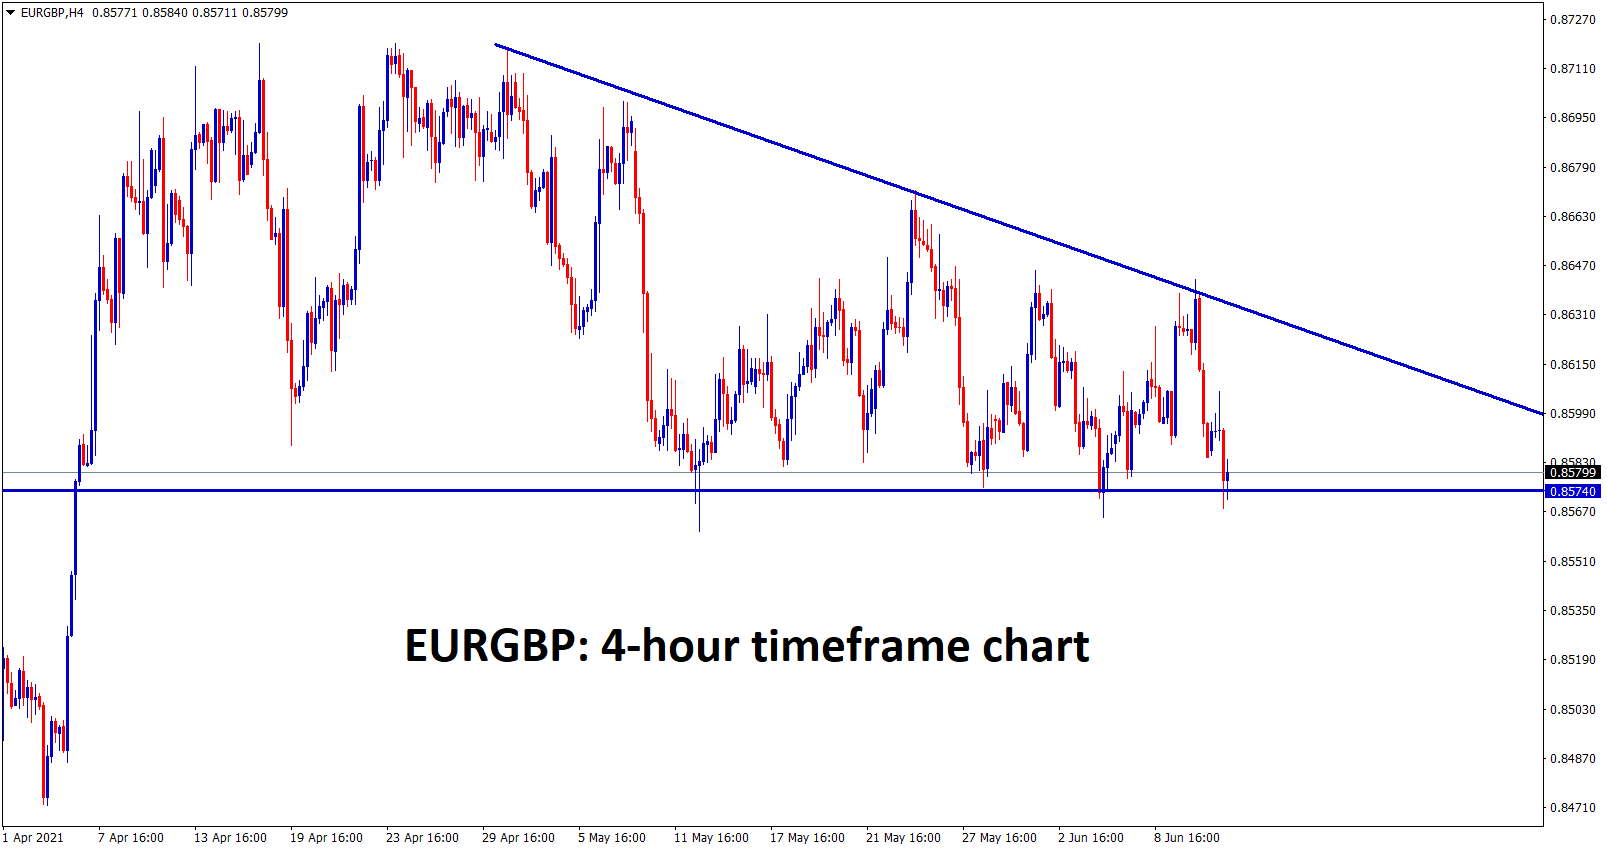 EURGBP is still moving between these descending Triangle pattern wait for the breakout from this pattern to catch the big move on EURGBP